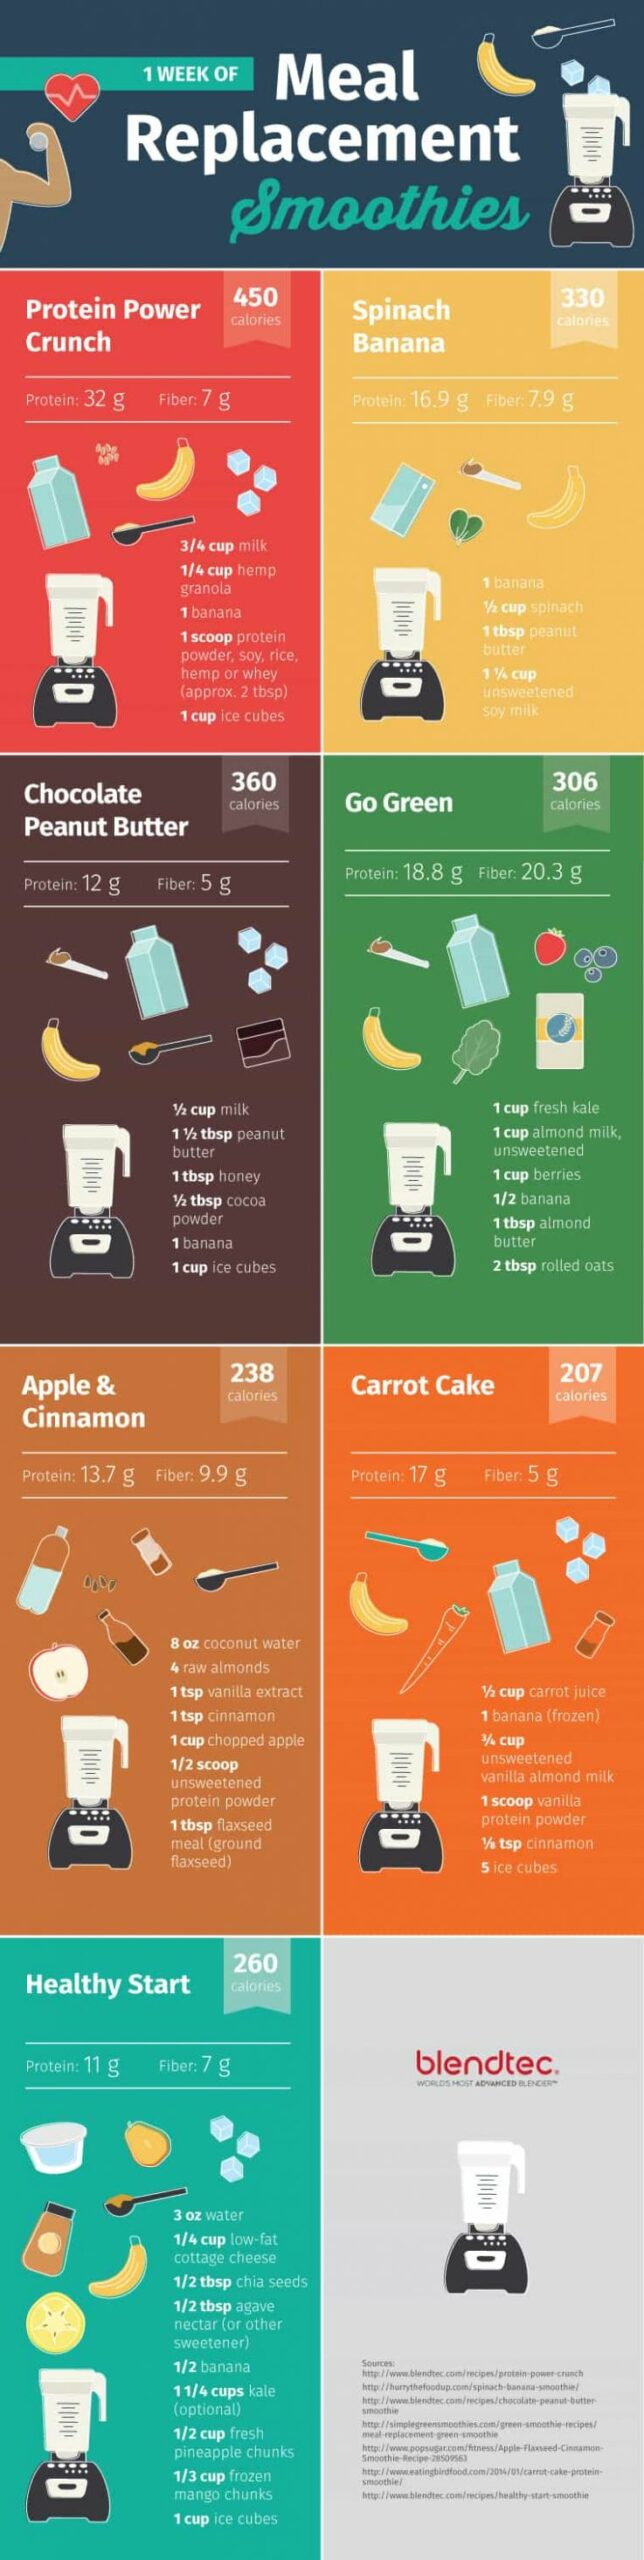 11 Best Weight Loss Protein Shake Recipes | The WHOot - Protein Shake Recipes Weight Loss Chocolate